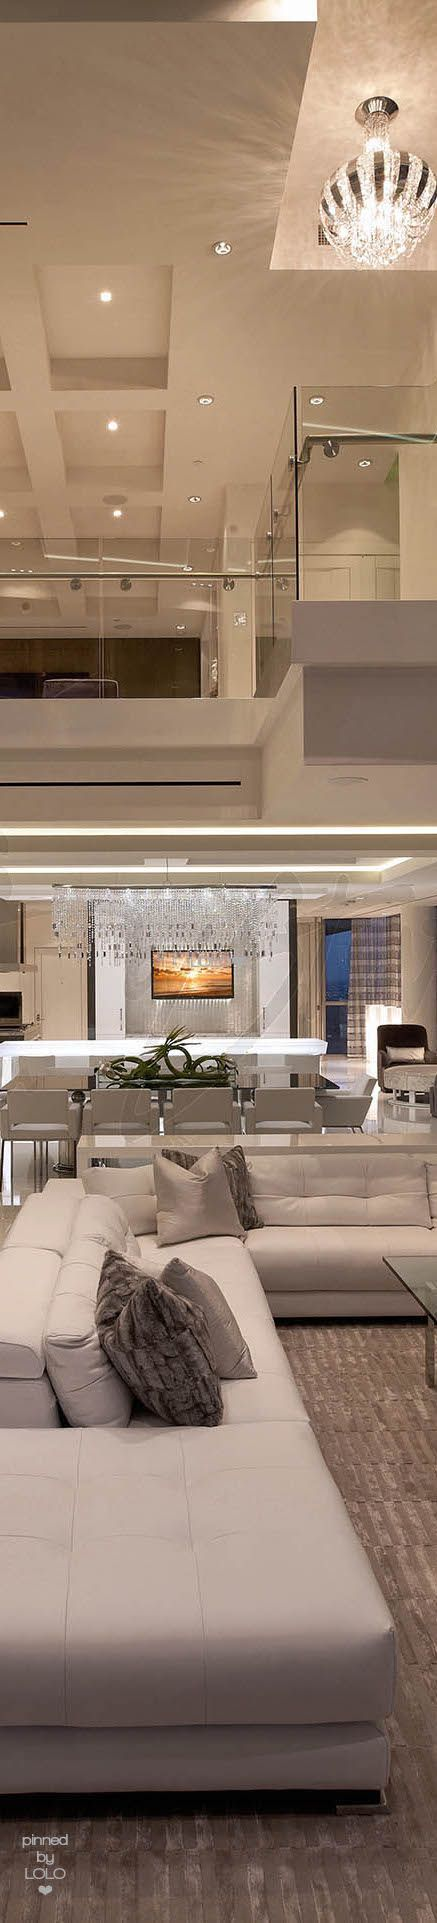 Best Images About Stunning Home Decor  Design On Pinterest - Interior home designs